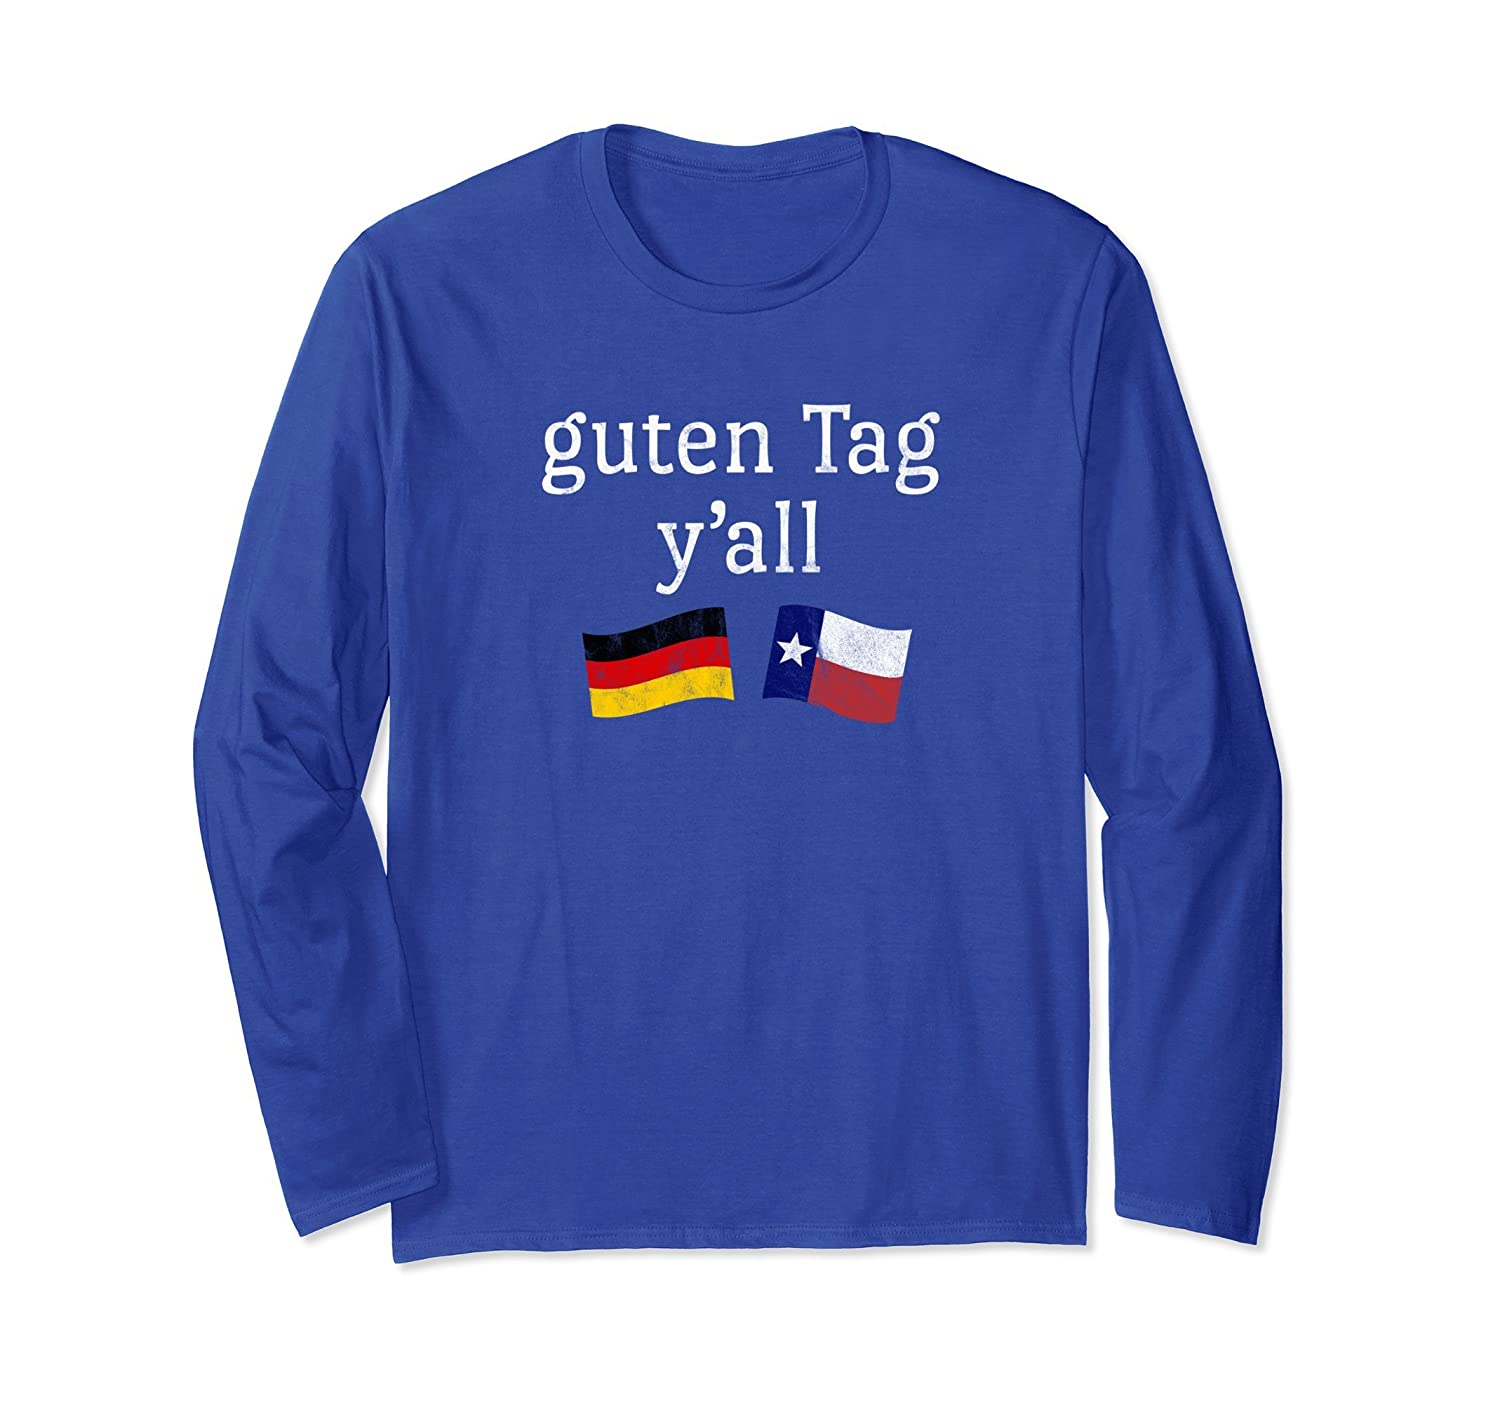 a9ba3e67 Guten Tag Y'all Prost German Texan Oktoberfest T-Shirt-Awarplus